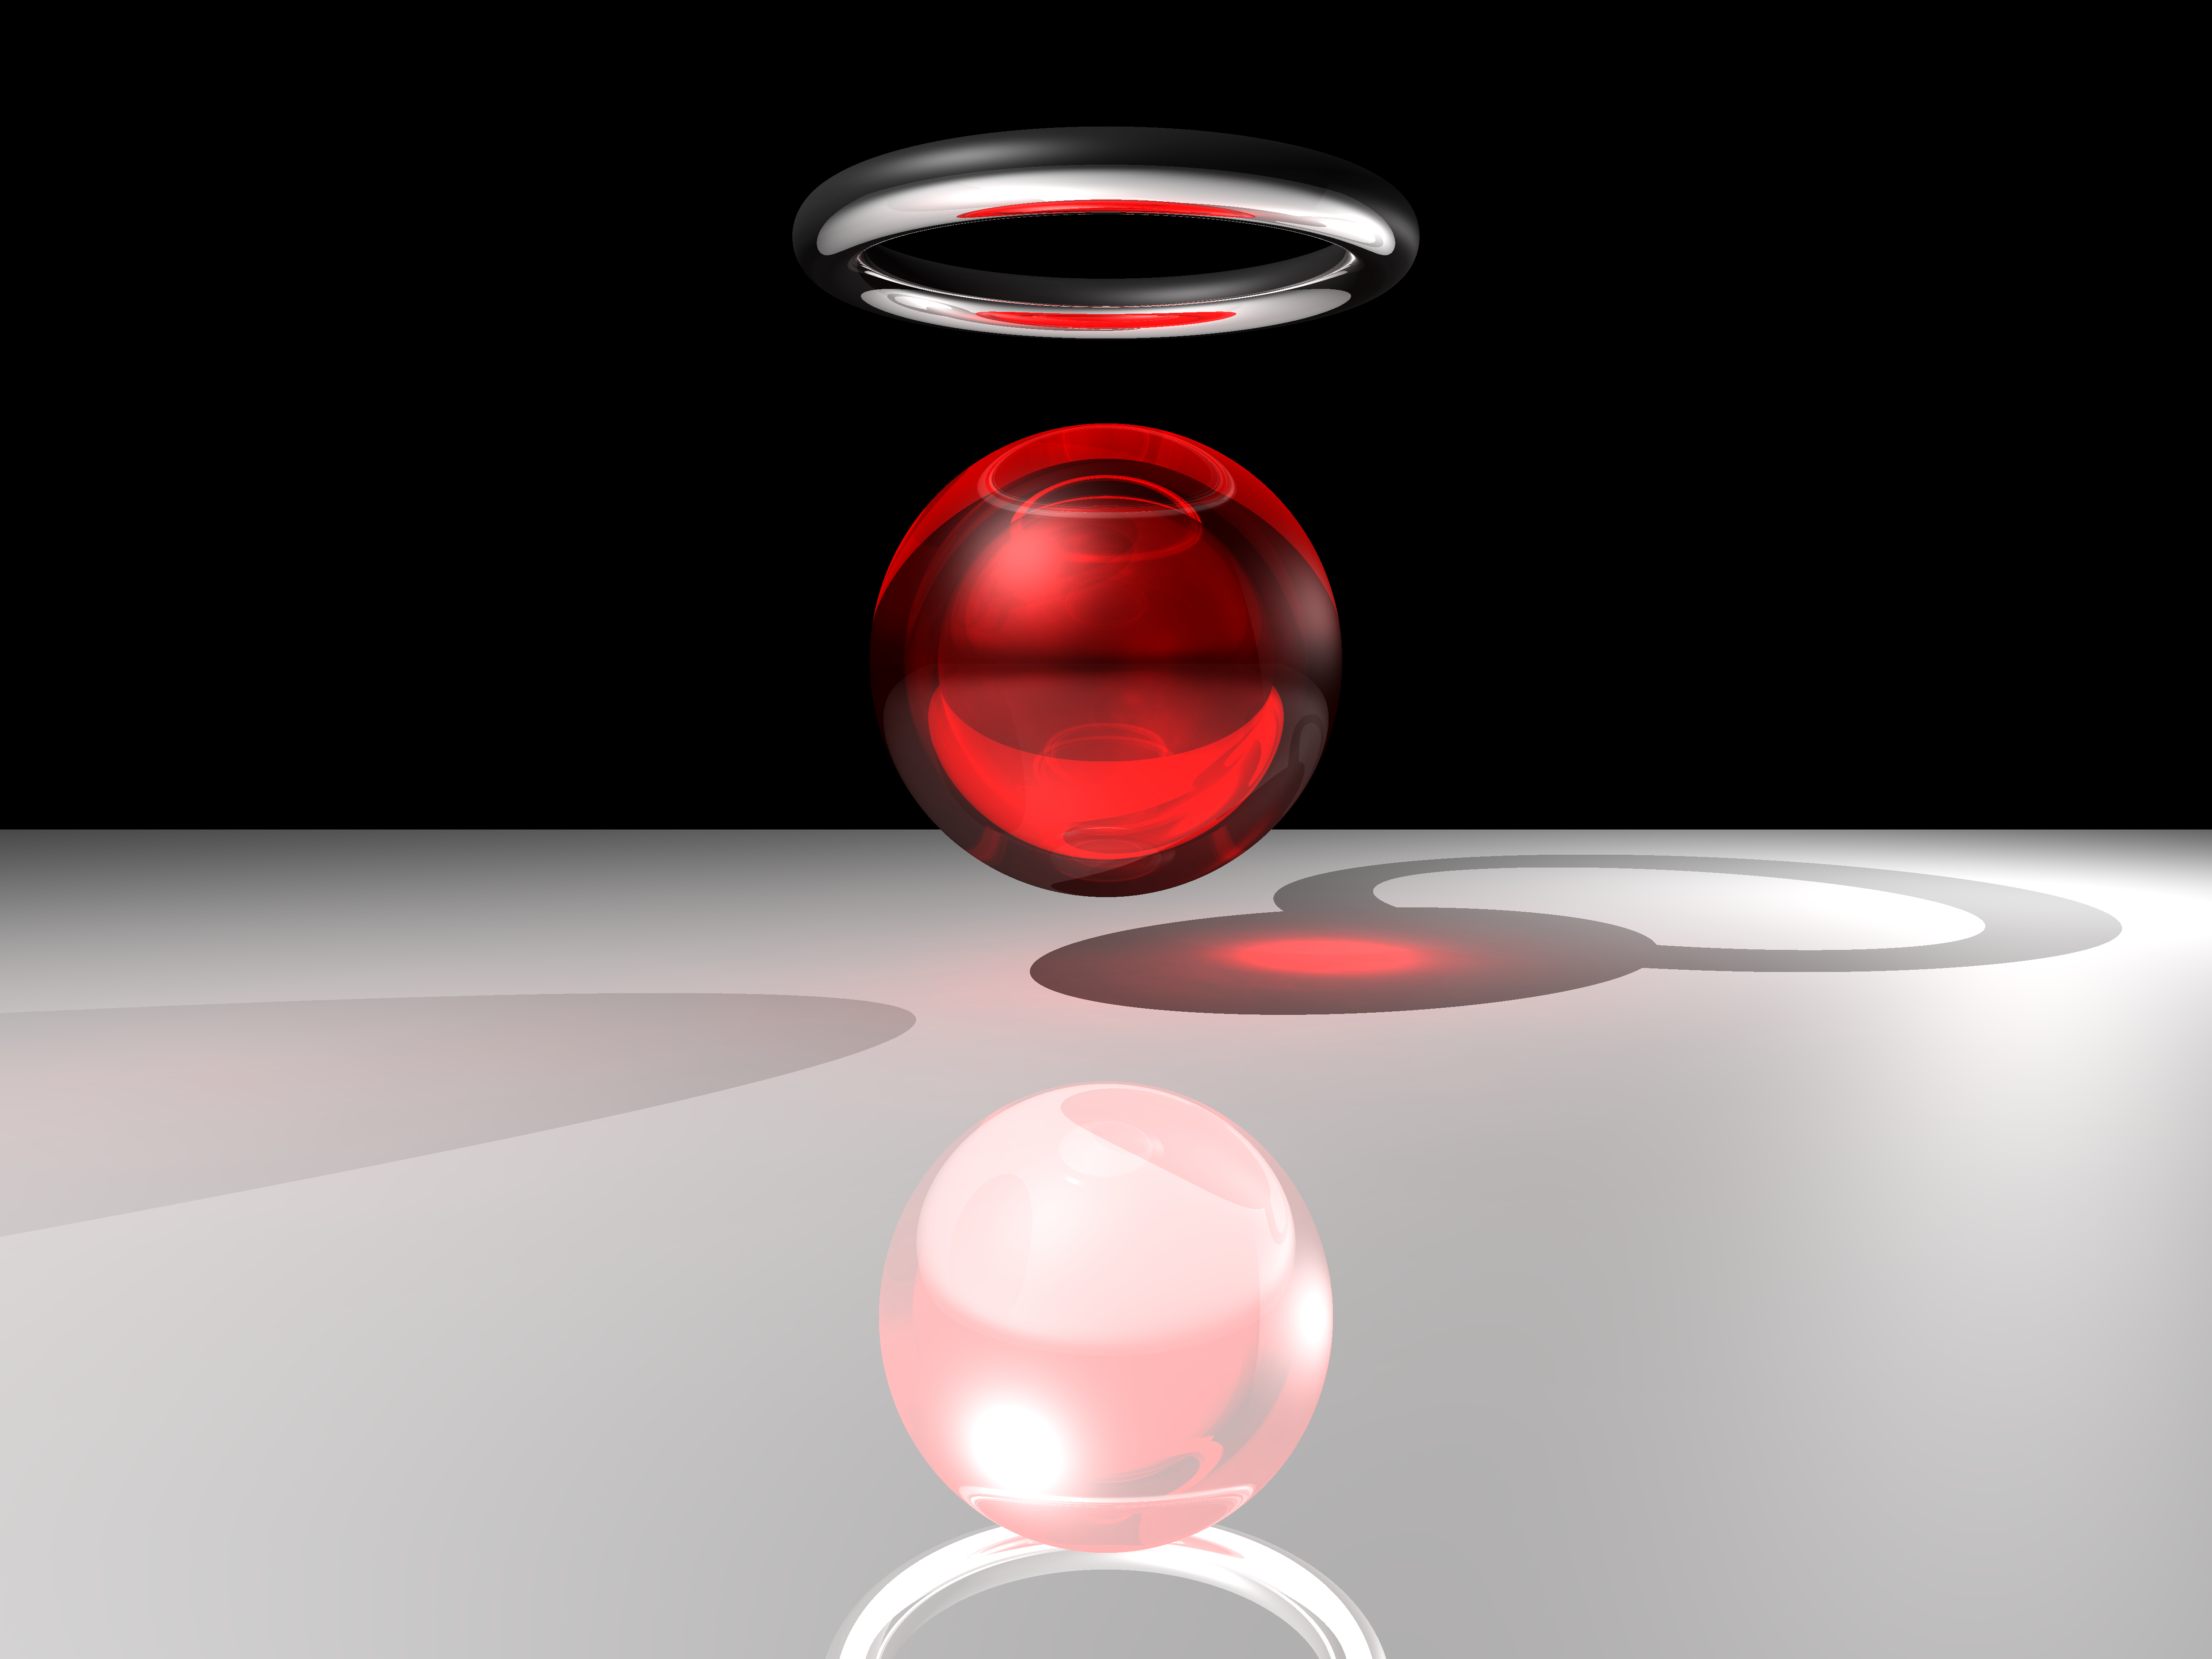 File Raytraced Red Sphere With Photon Mapping Png